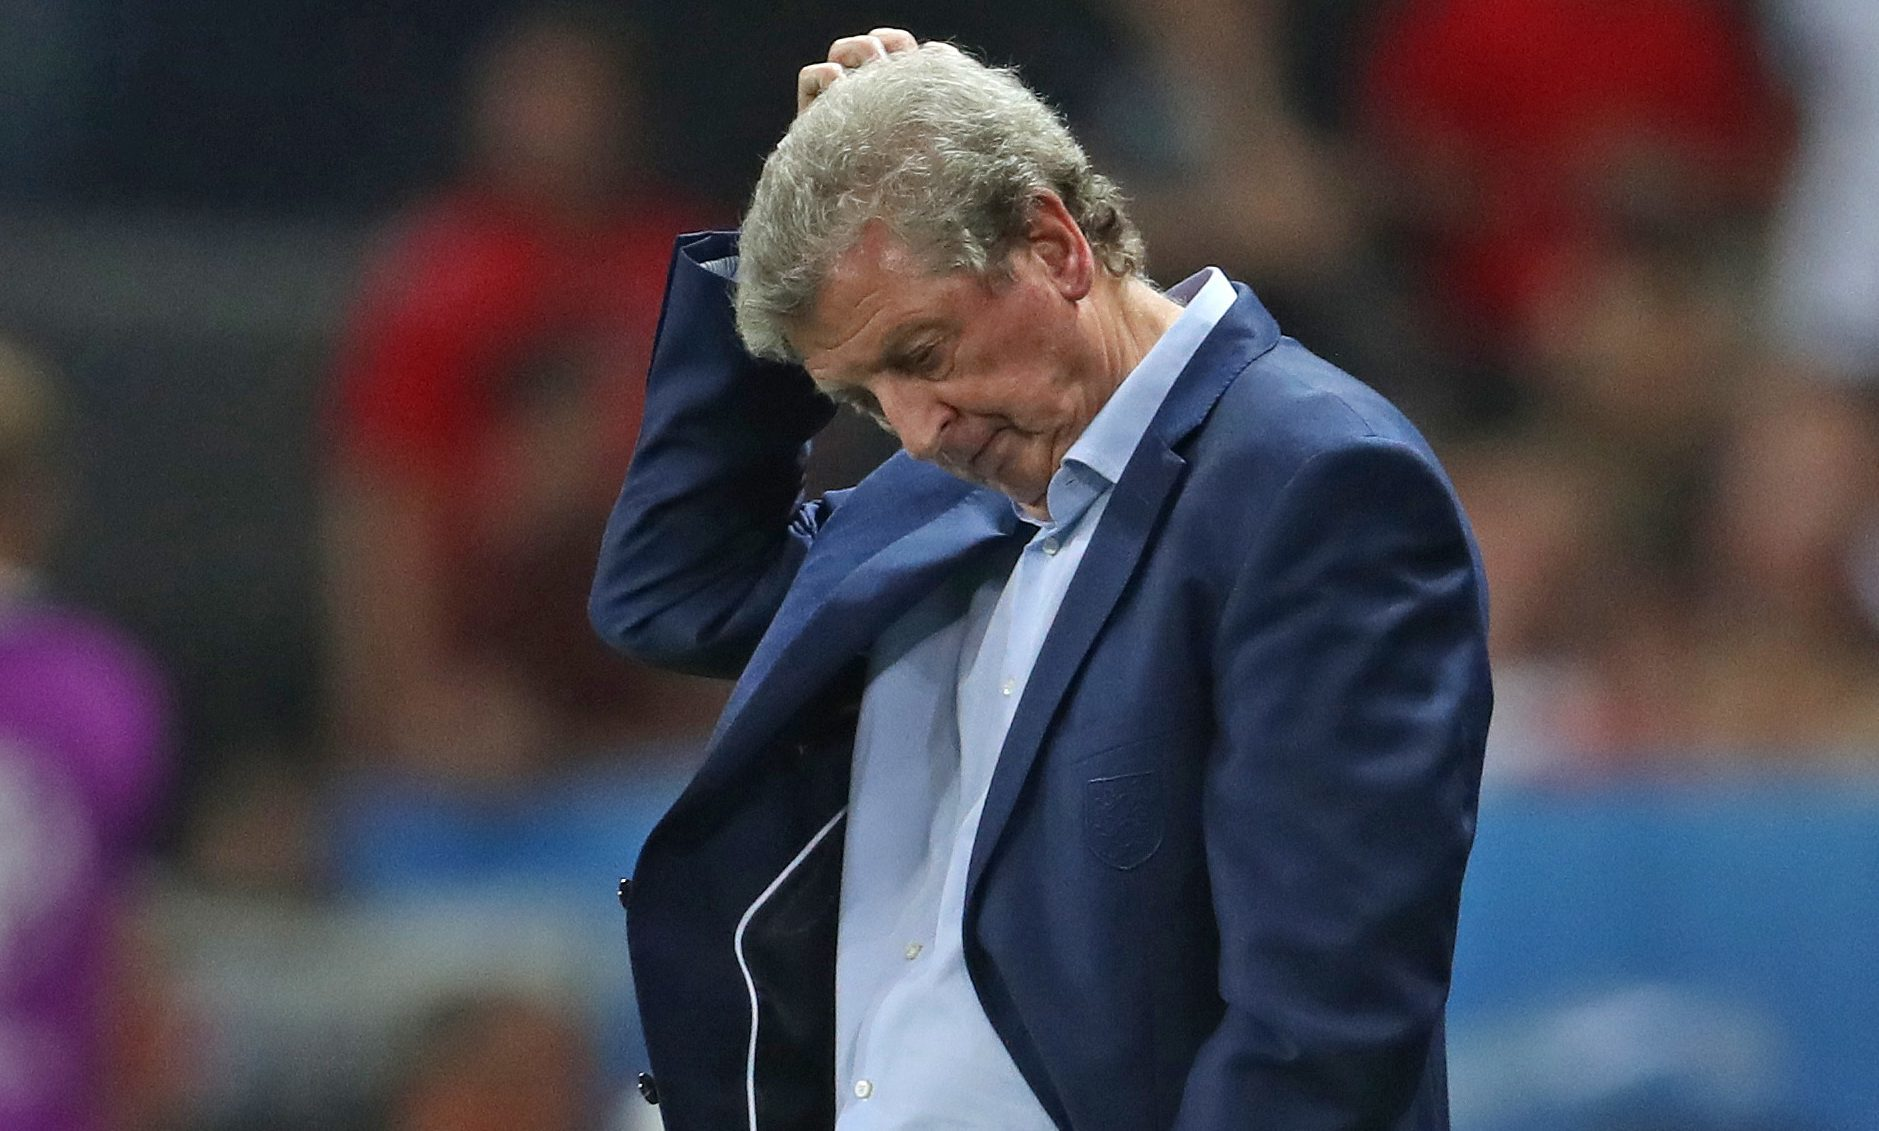 Roy Hodgson looks on as England fall to Iceland.